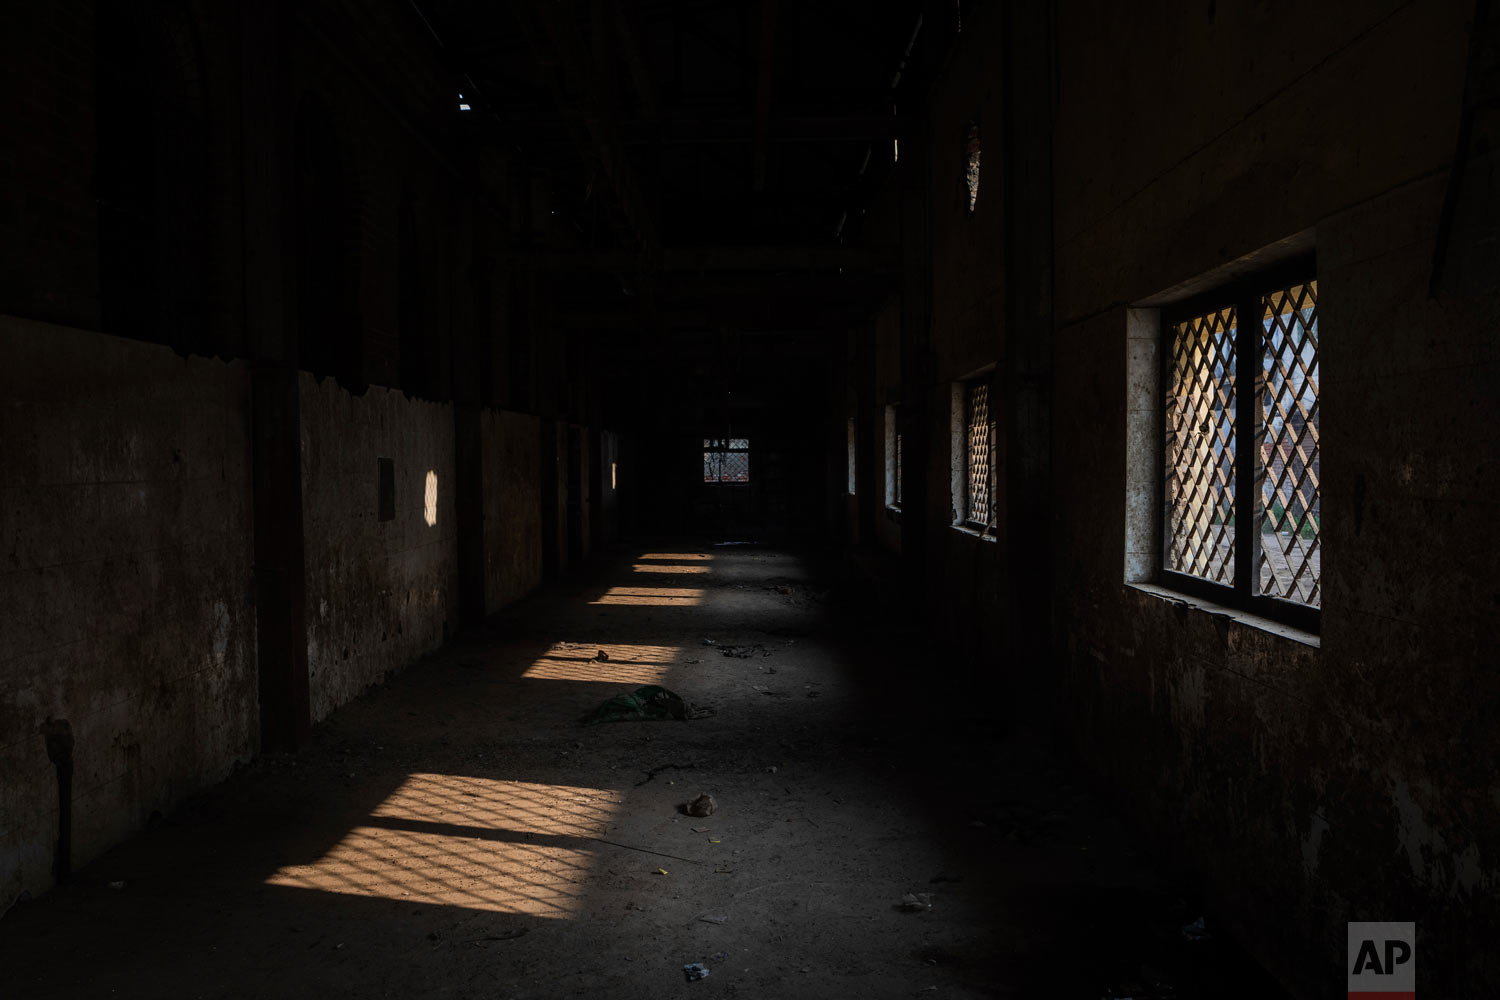 This photo shows a dilapidated and closed slaughter house in Prayagraj, India, Dec. 12, 2018. (AP Photo/Bernat Armangue)